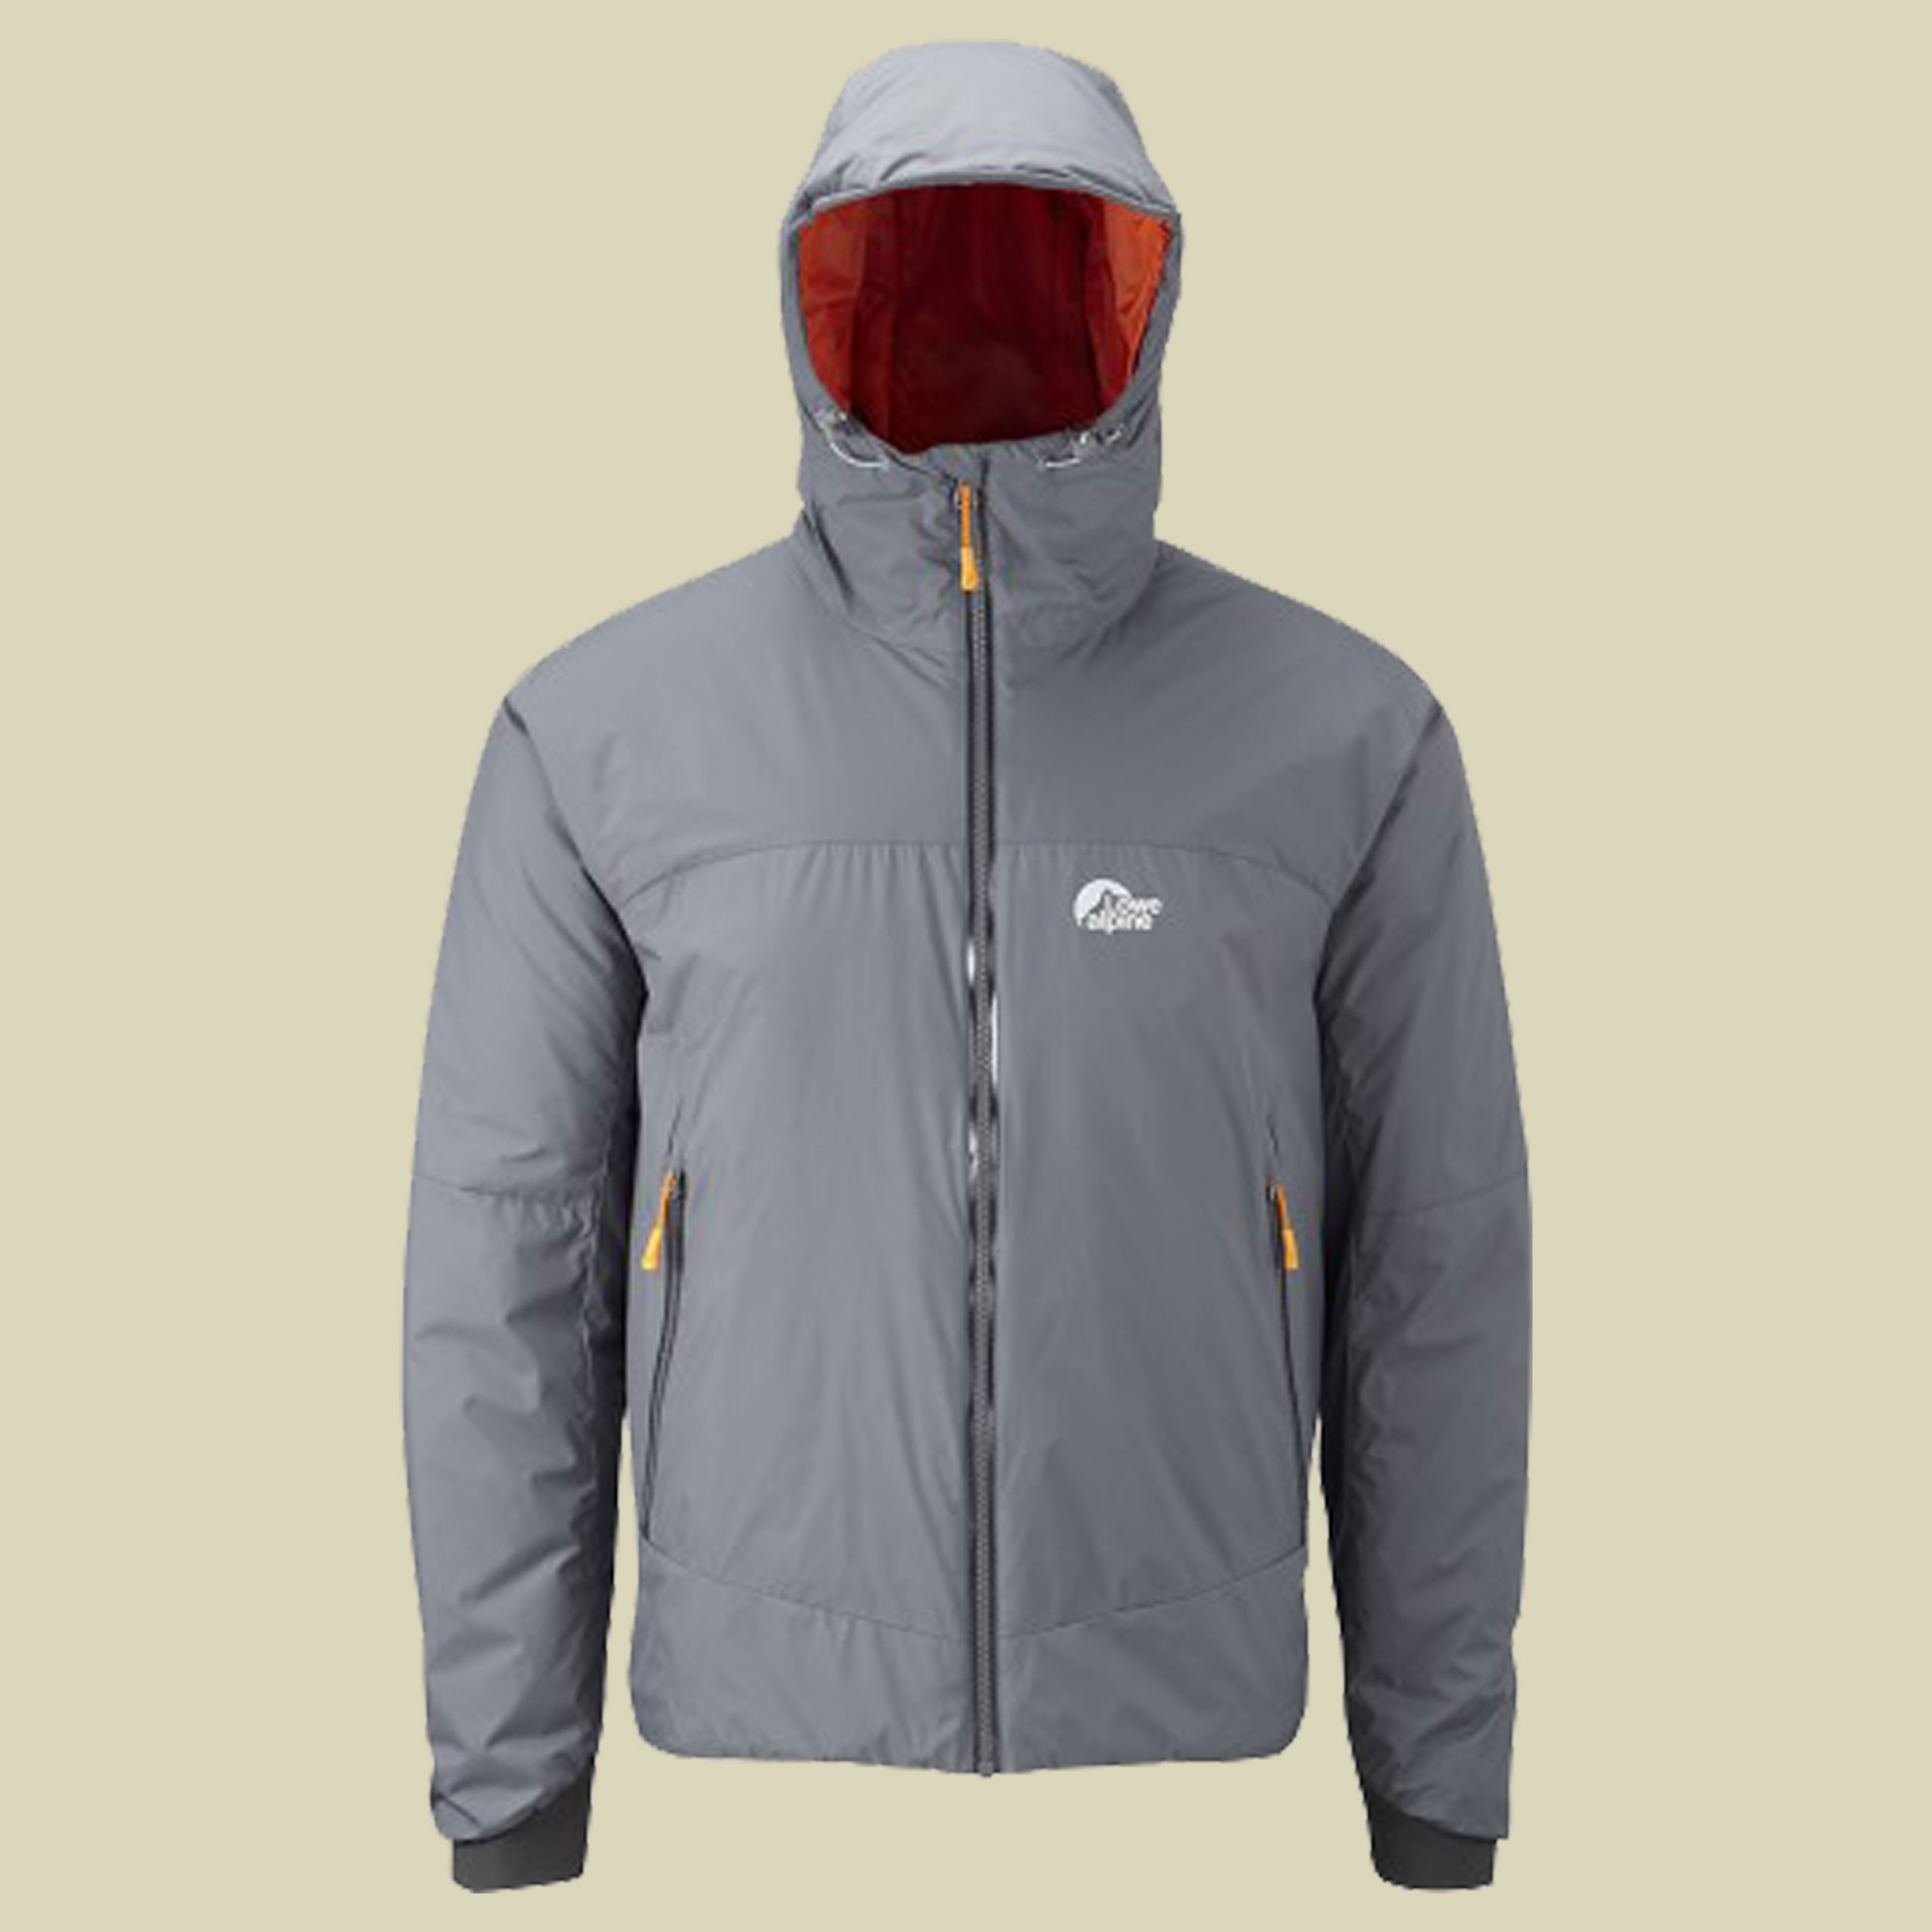 Northern Lights Jacket Men